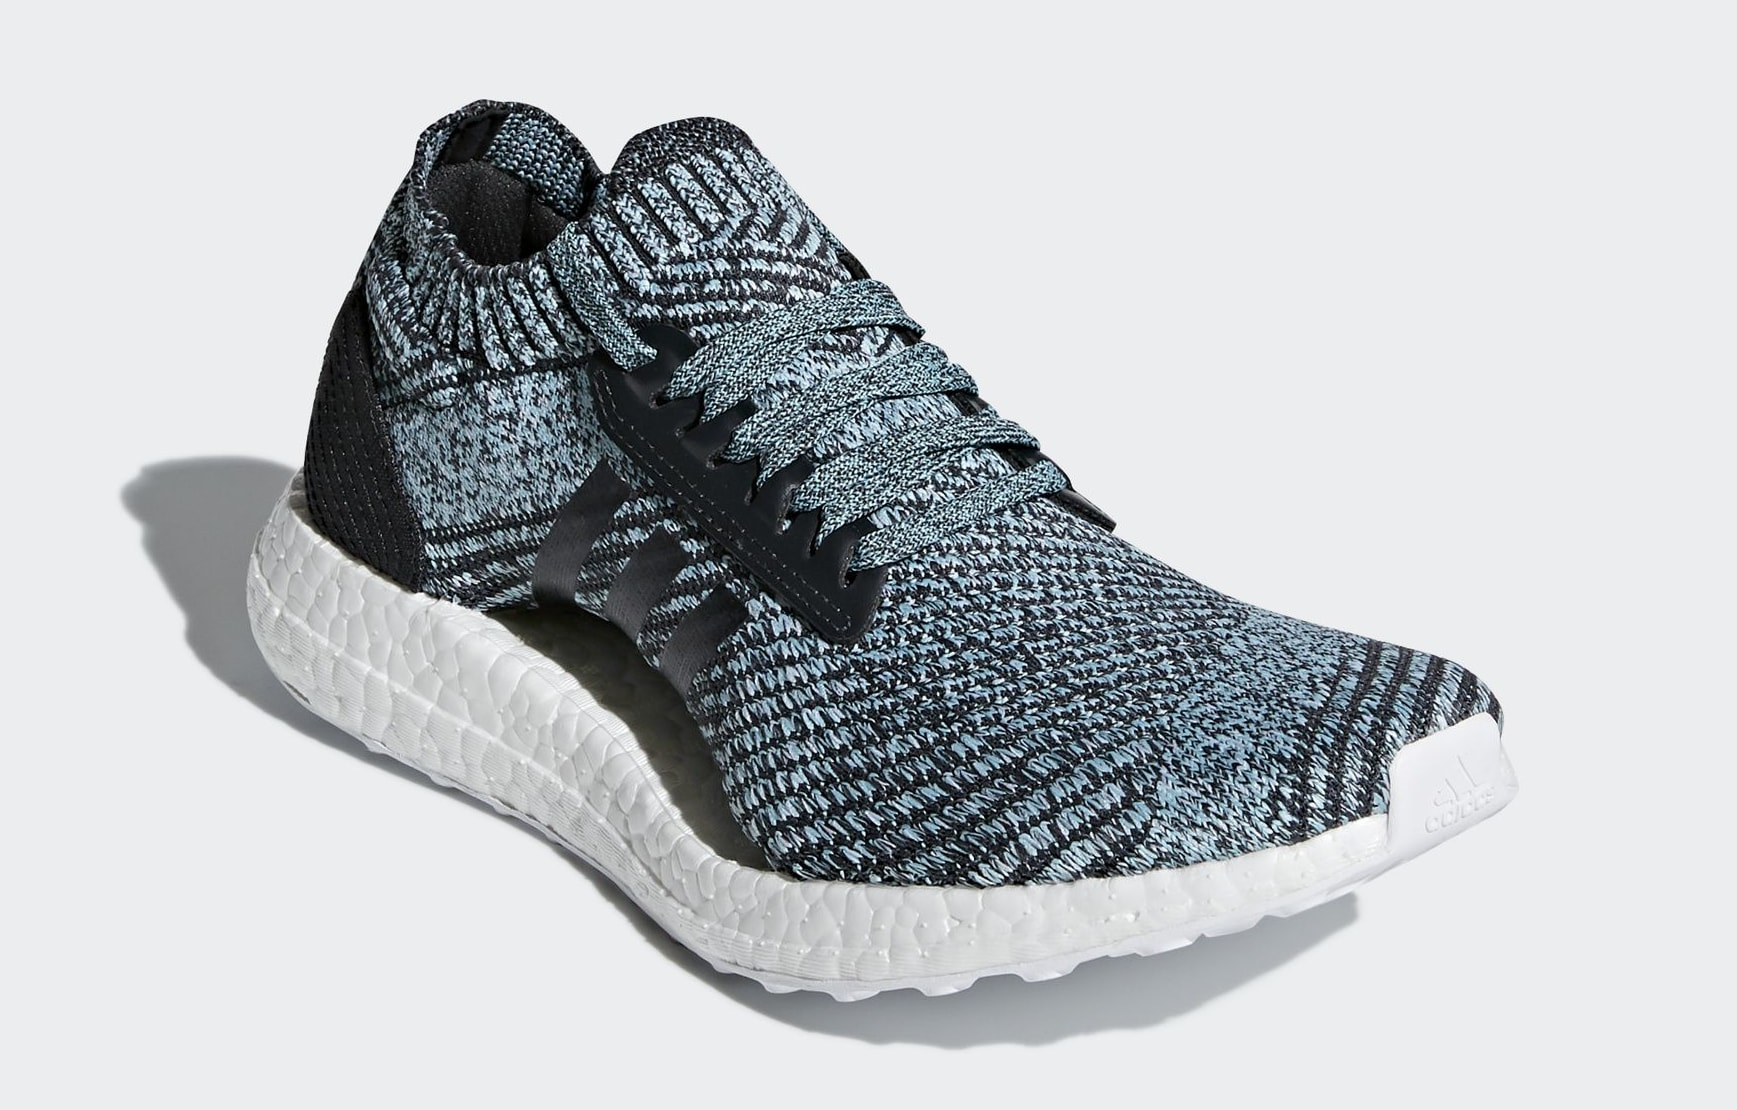 Parley x Adidas Collection CG3673 DB0641 DB1252 CQ0784